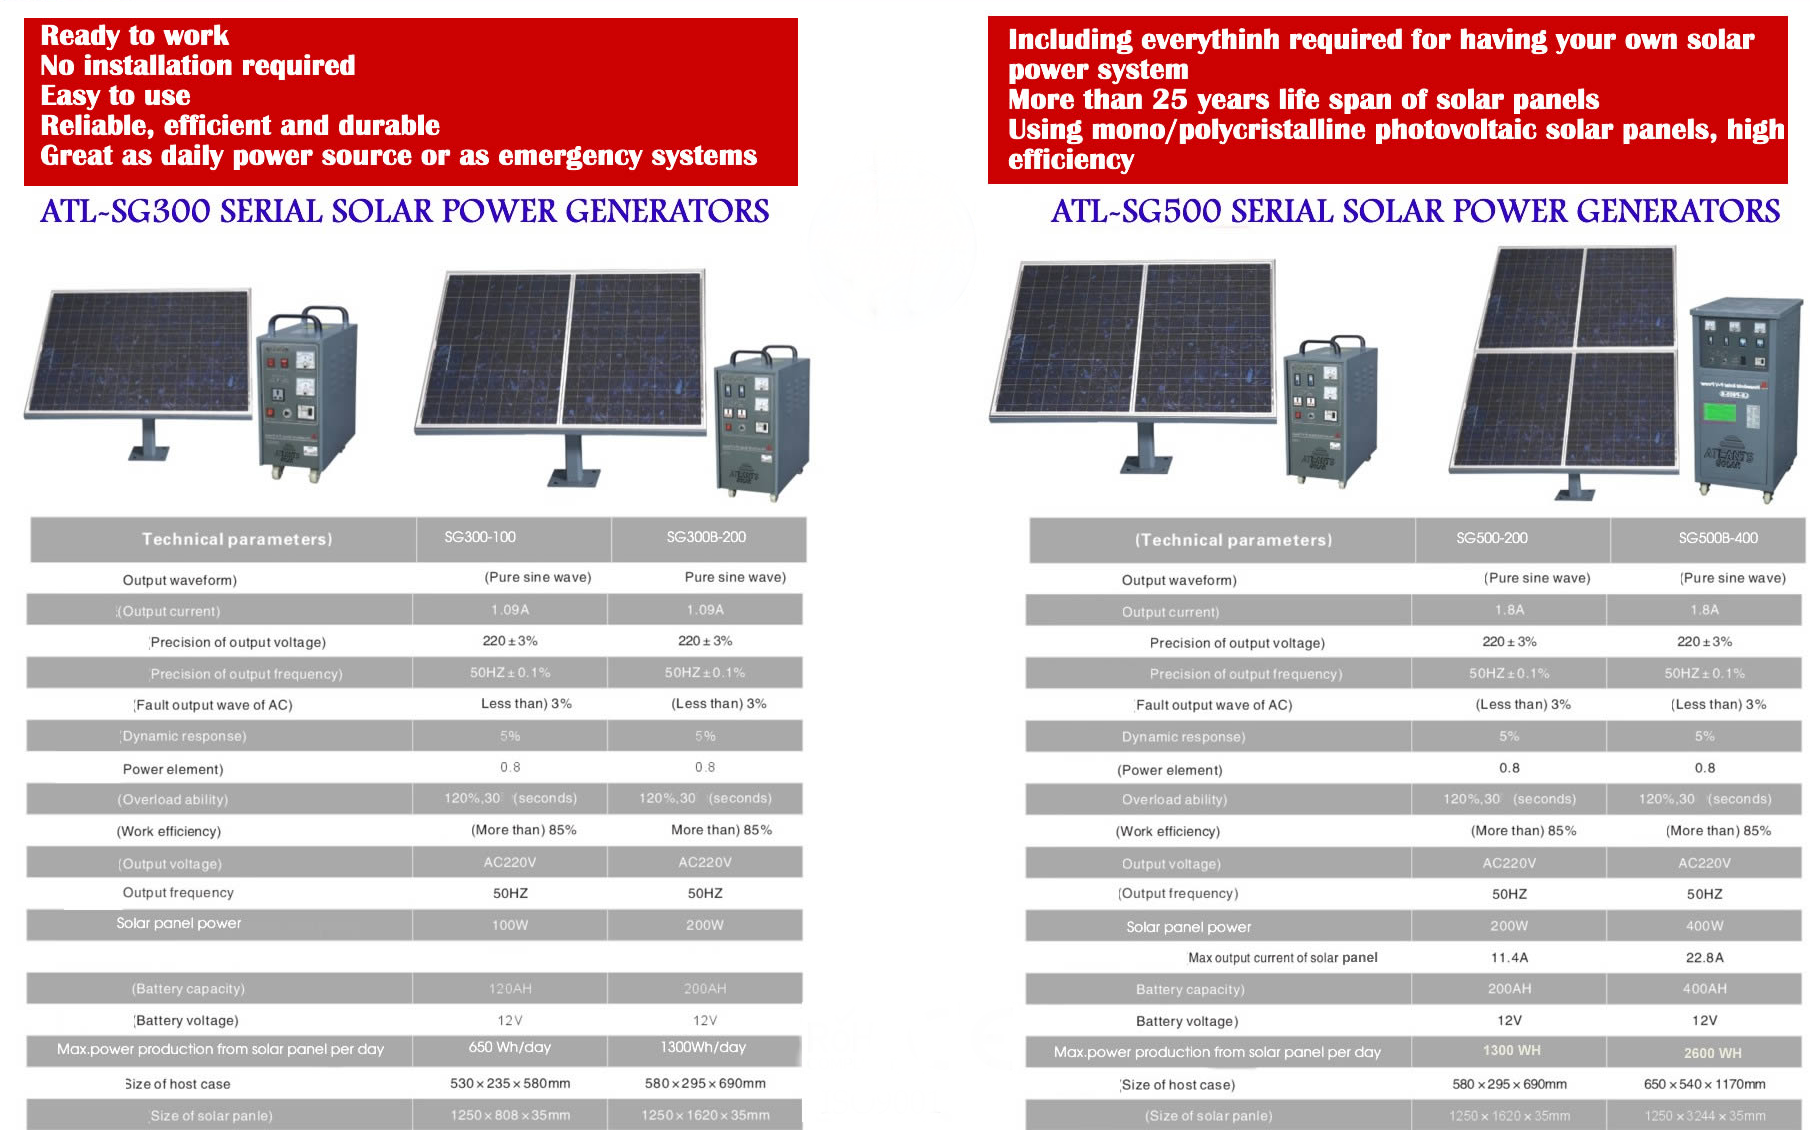 Solar power generators SG300-SG500 serials with max-output 2600Wh-day